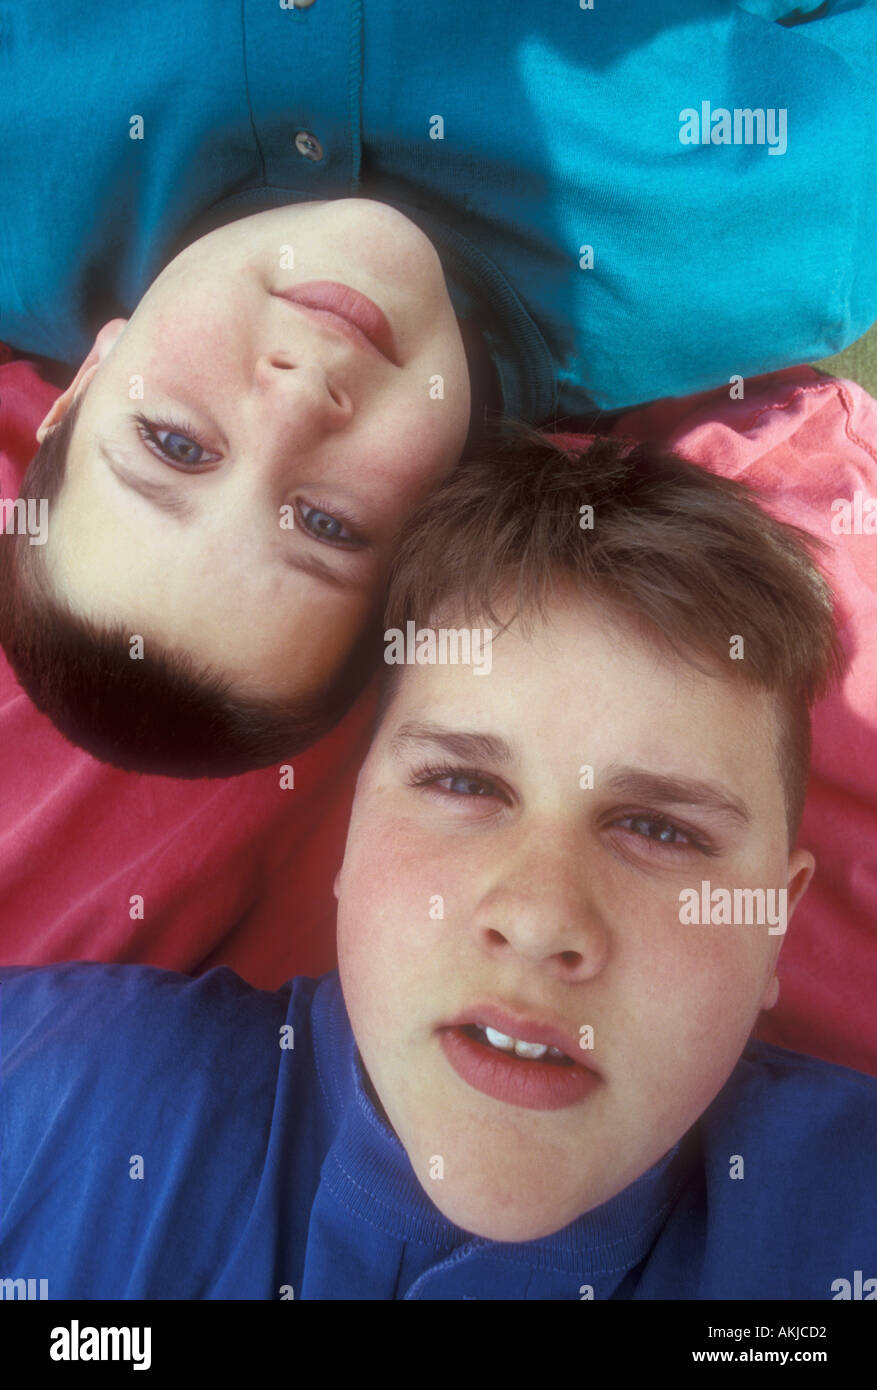 Boy's Heads touching Upside Down - Stock Image